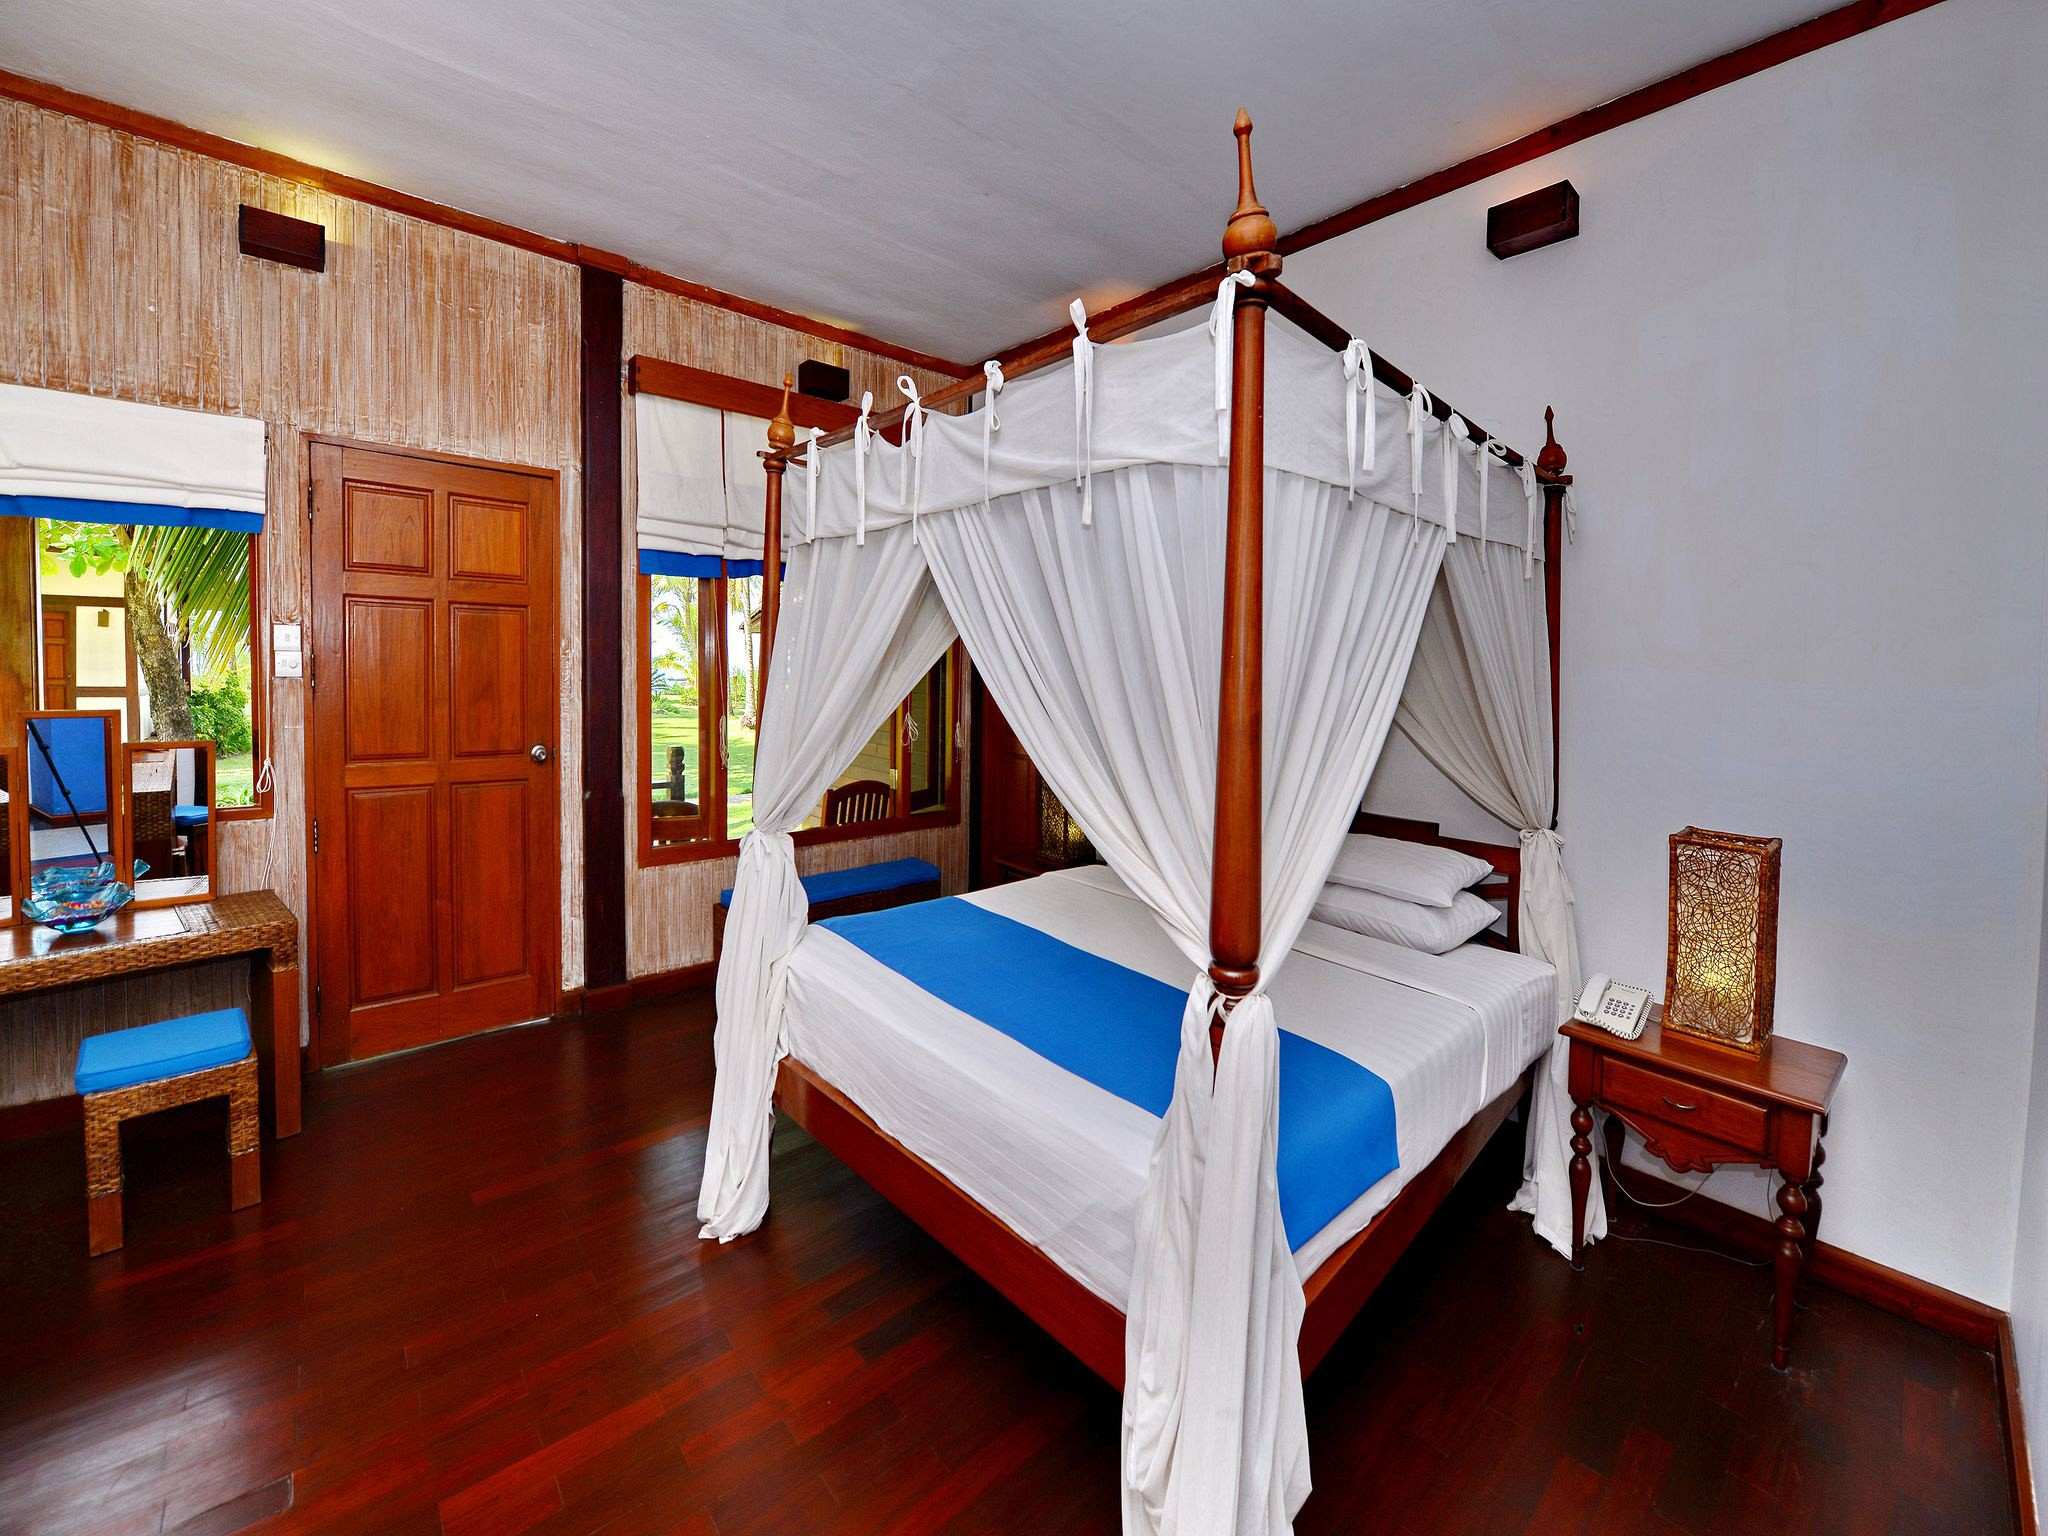 Best hotel in ngwe saung beach, Aureum palace resort ngwe saung